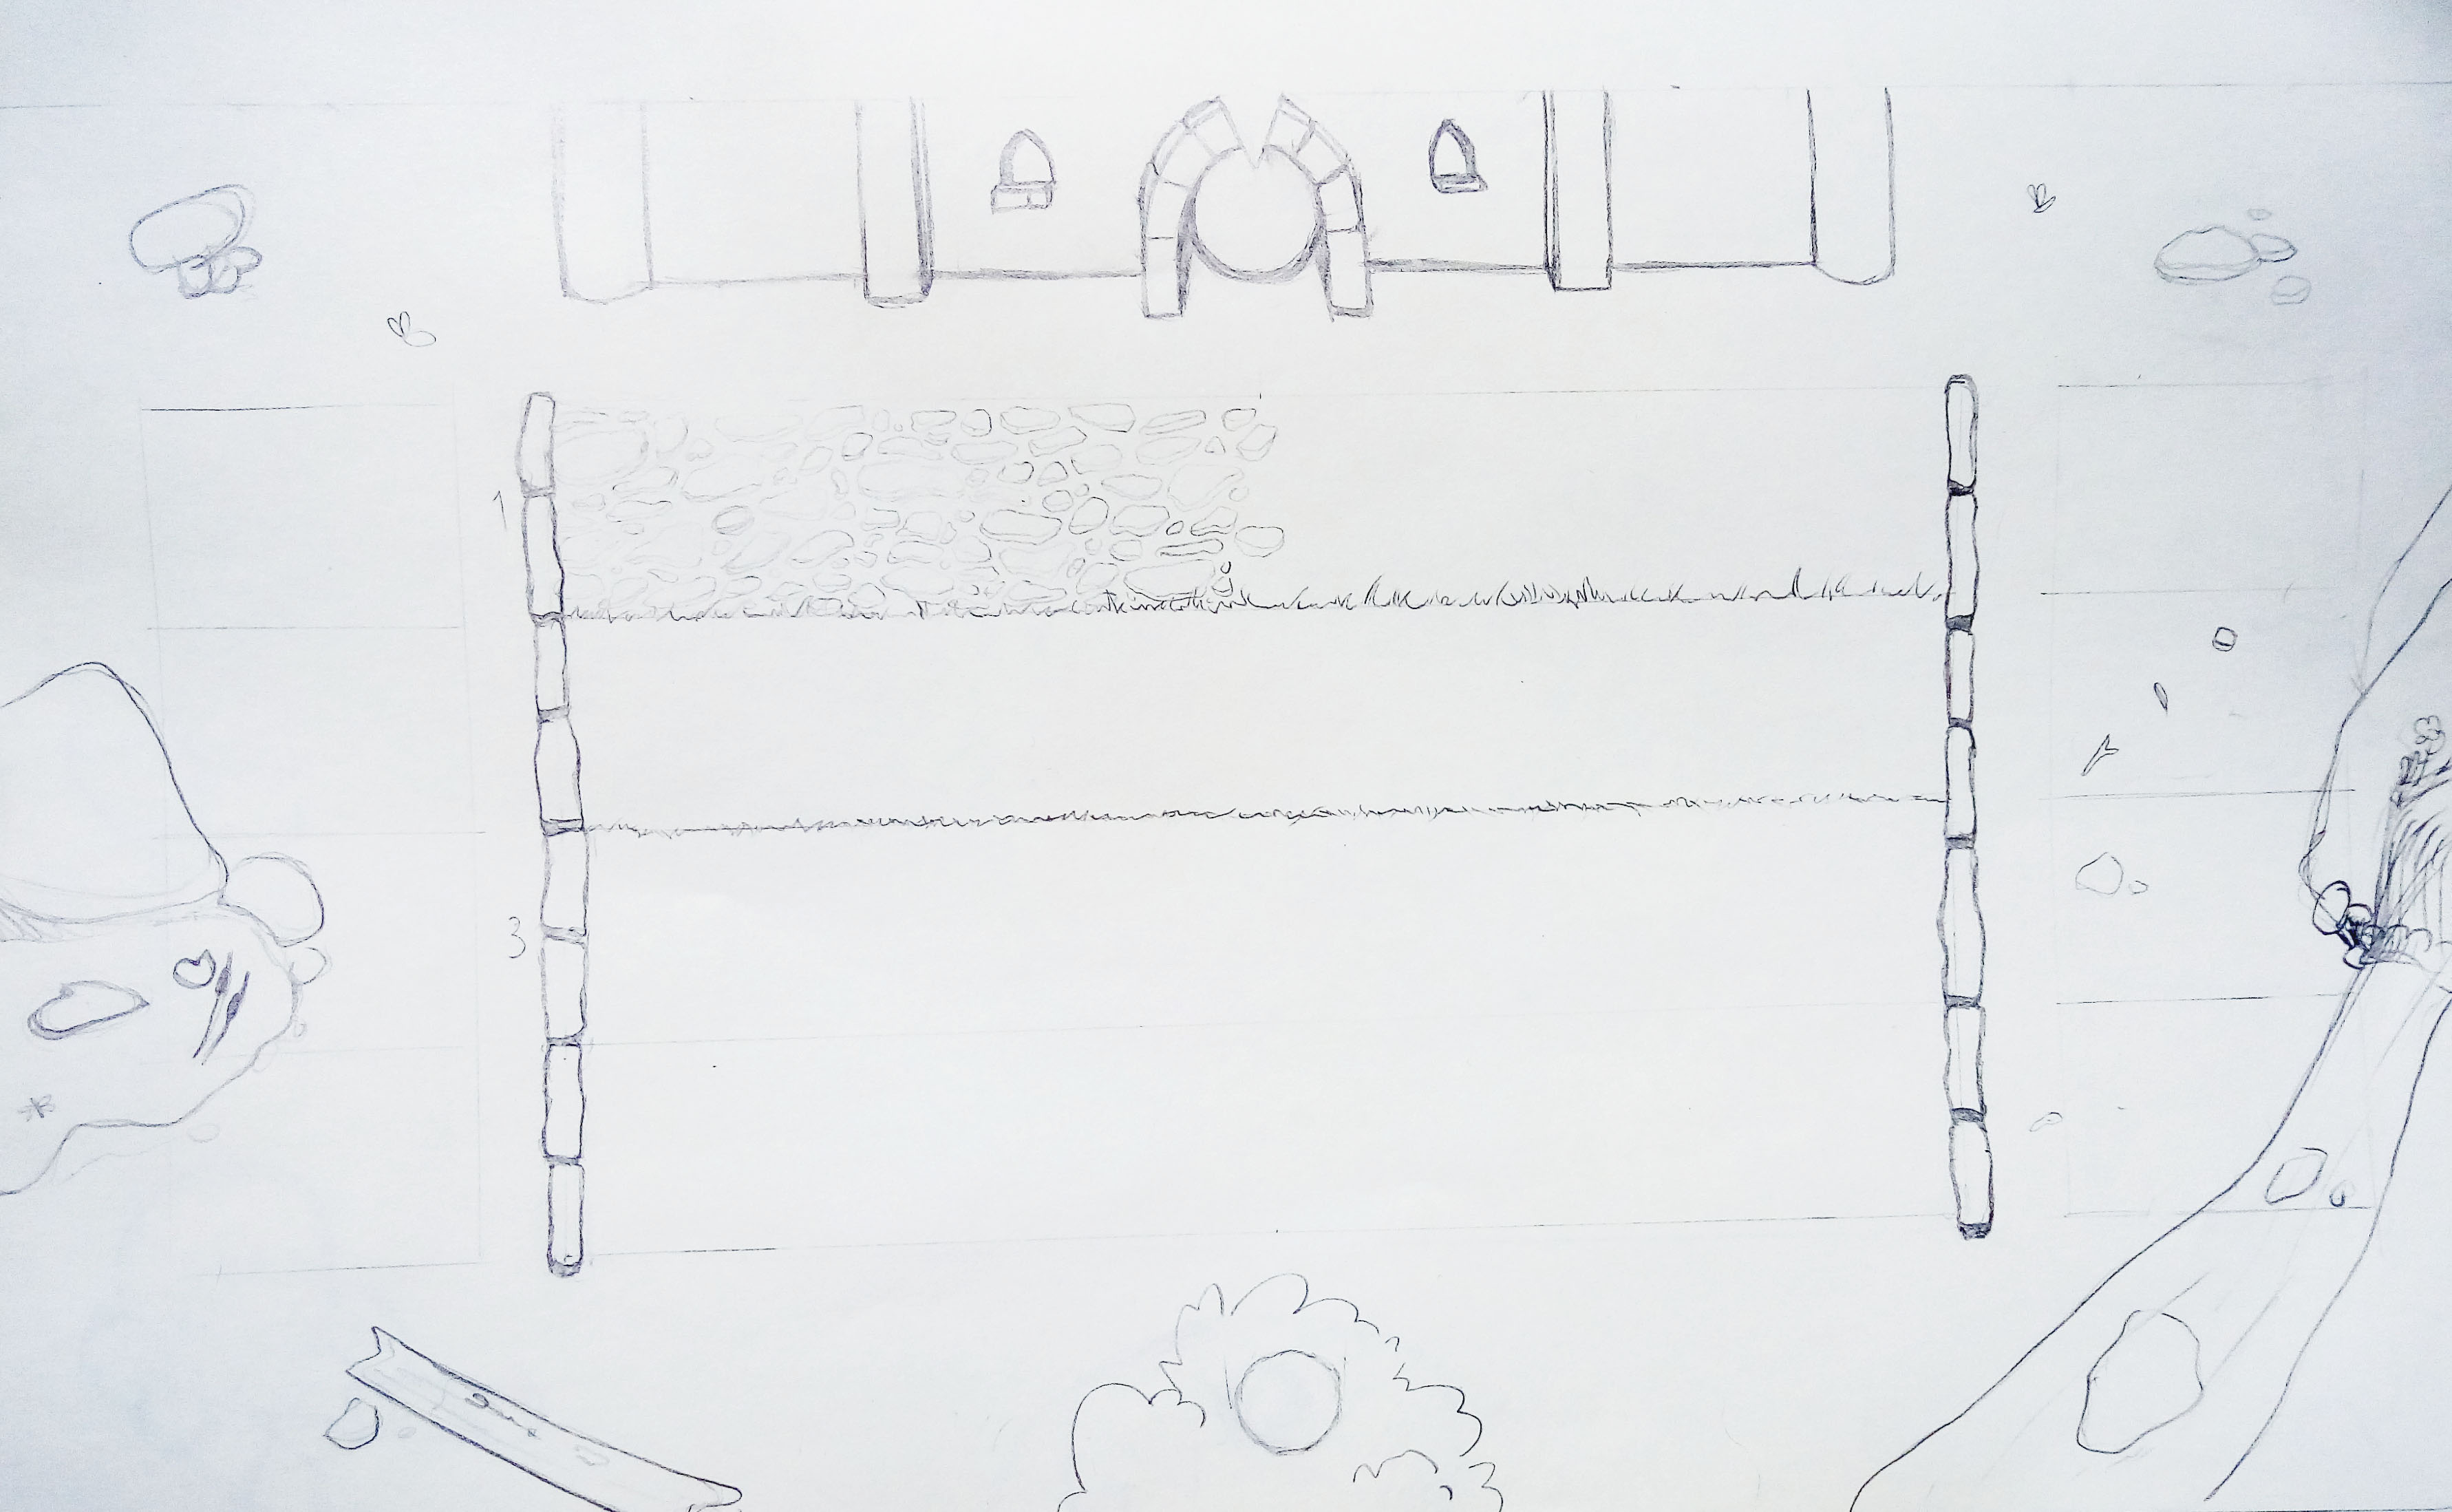 Game Boards Environment Sketch 1